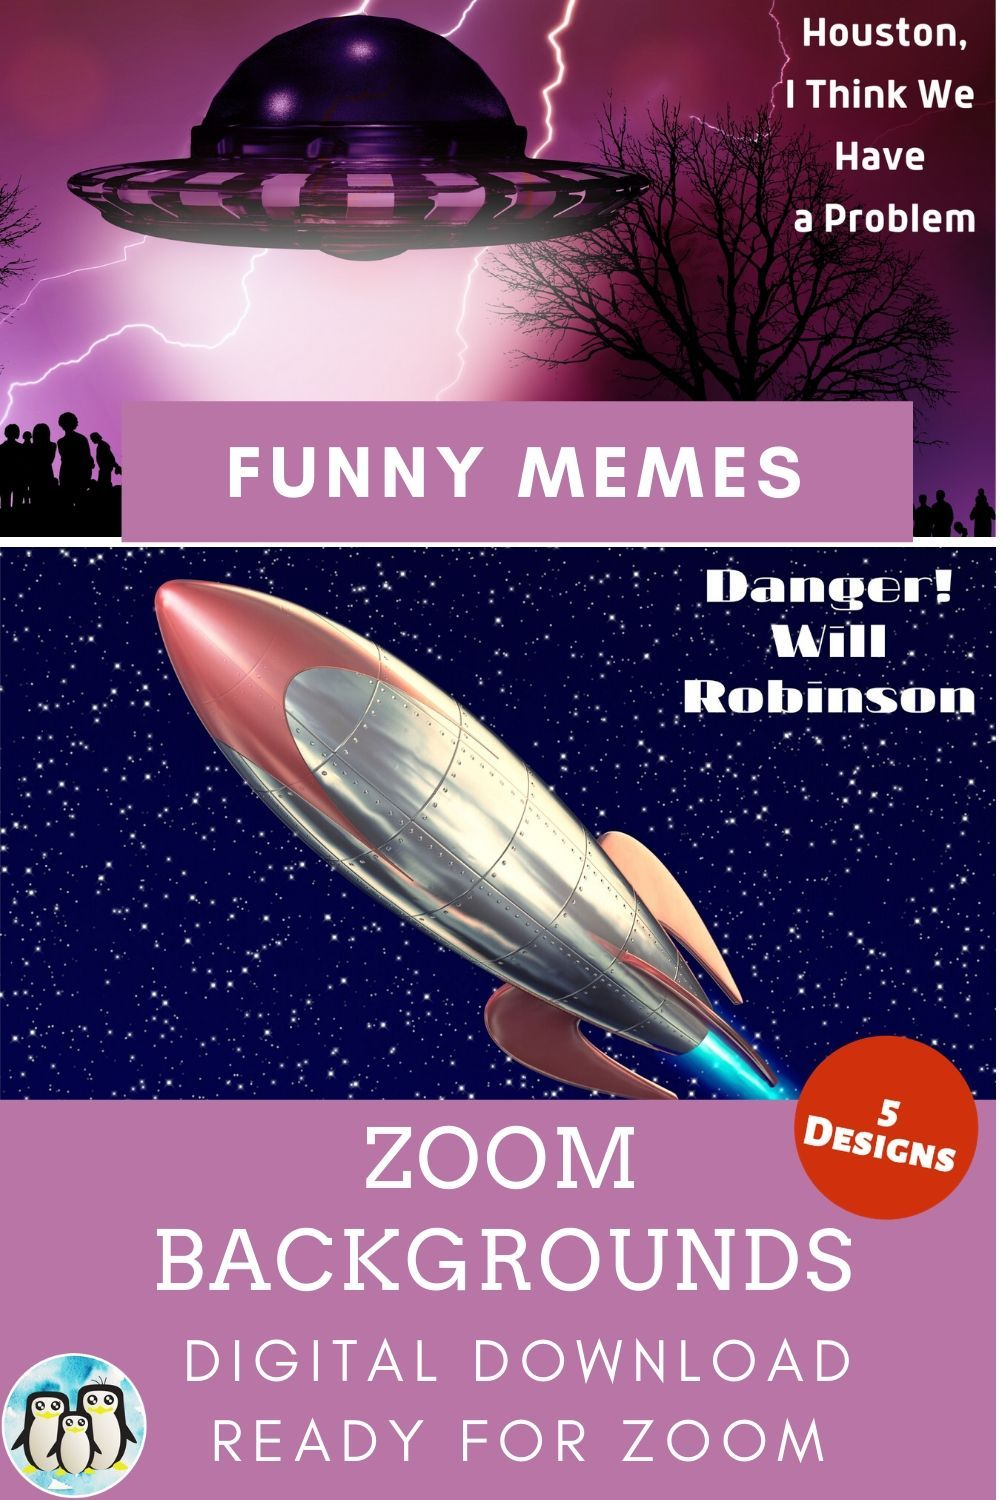 Zoom Virtual Background Bundle Of 5 Funny Memes Zoom Background Virtual Background Video Conference Backgrounds Cute Gifts For Friends Funny Memes Zoom Conference Call